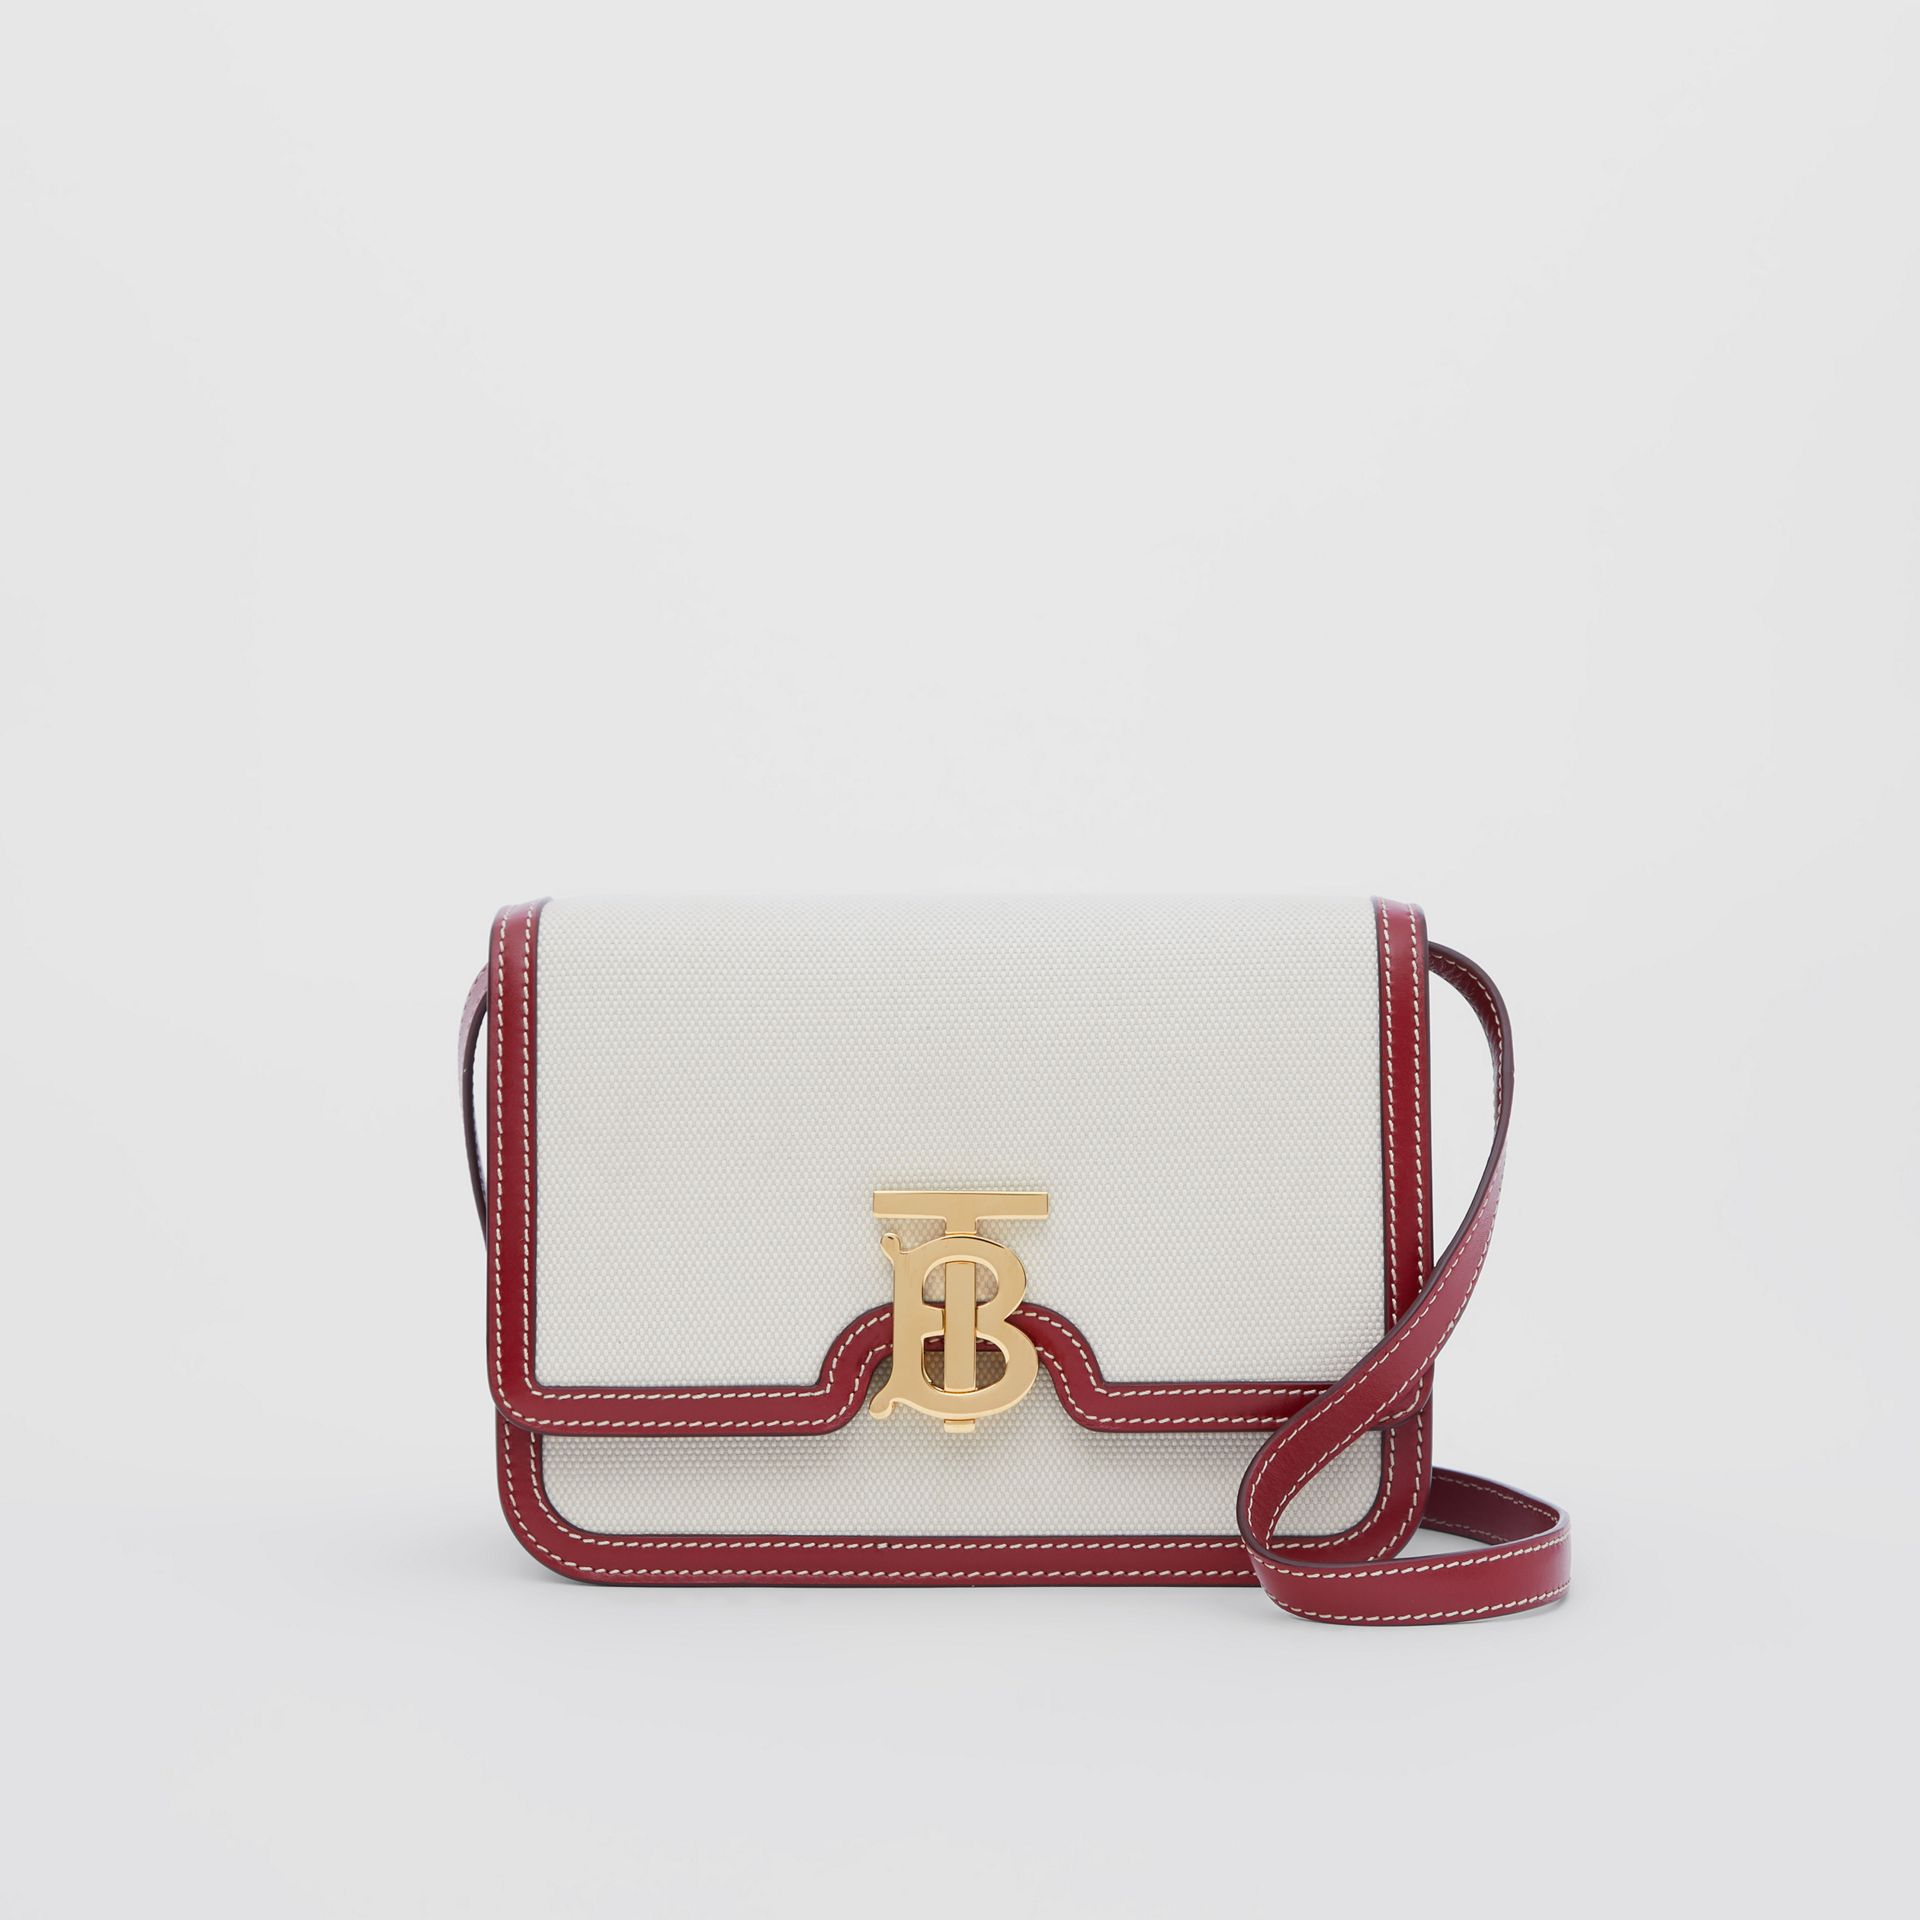 Small Two-tone Canvas and Leather TB Bag in Natural/dark Carmine - Women | Burberry Australia - gallery image 0